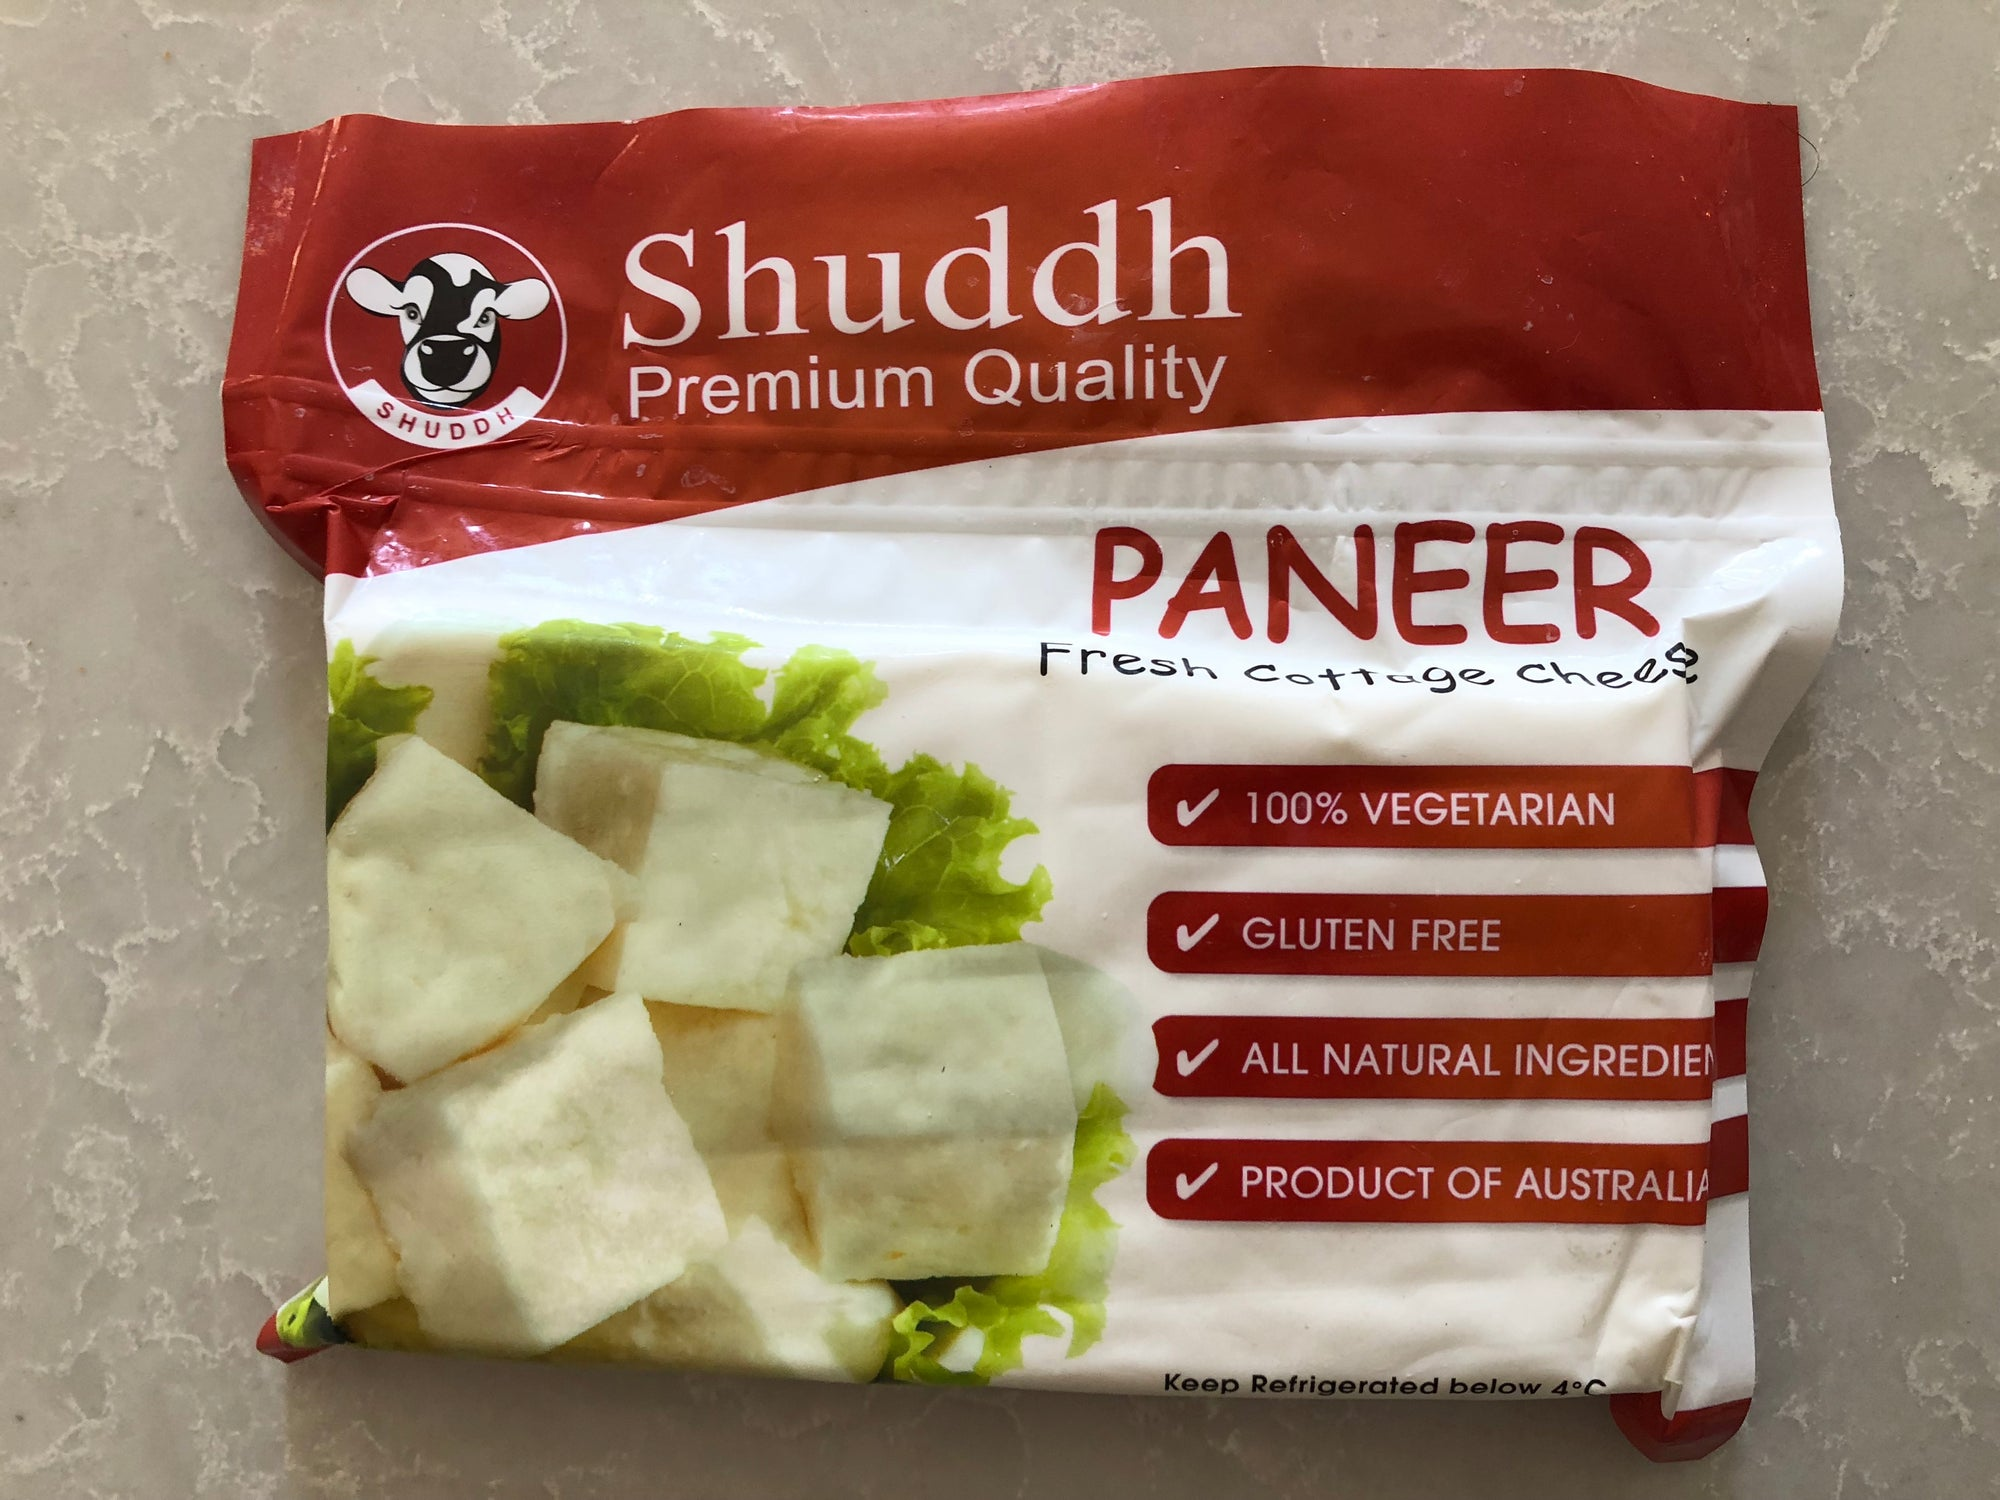 Paneer (Indian Cottage Cheese) - Shuddh brand